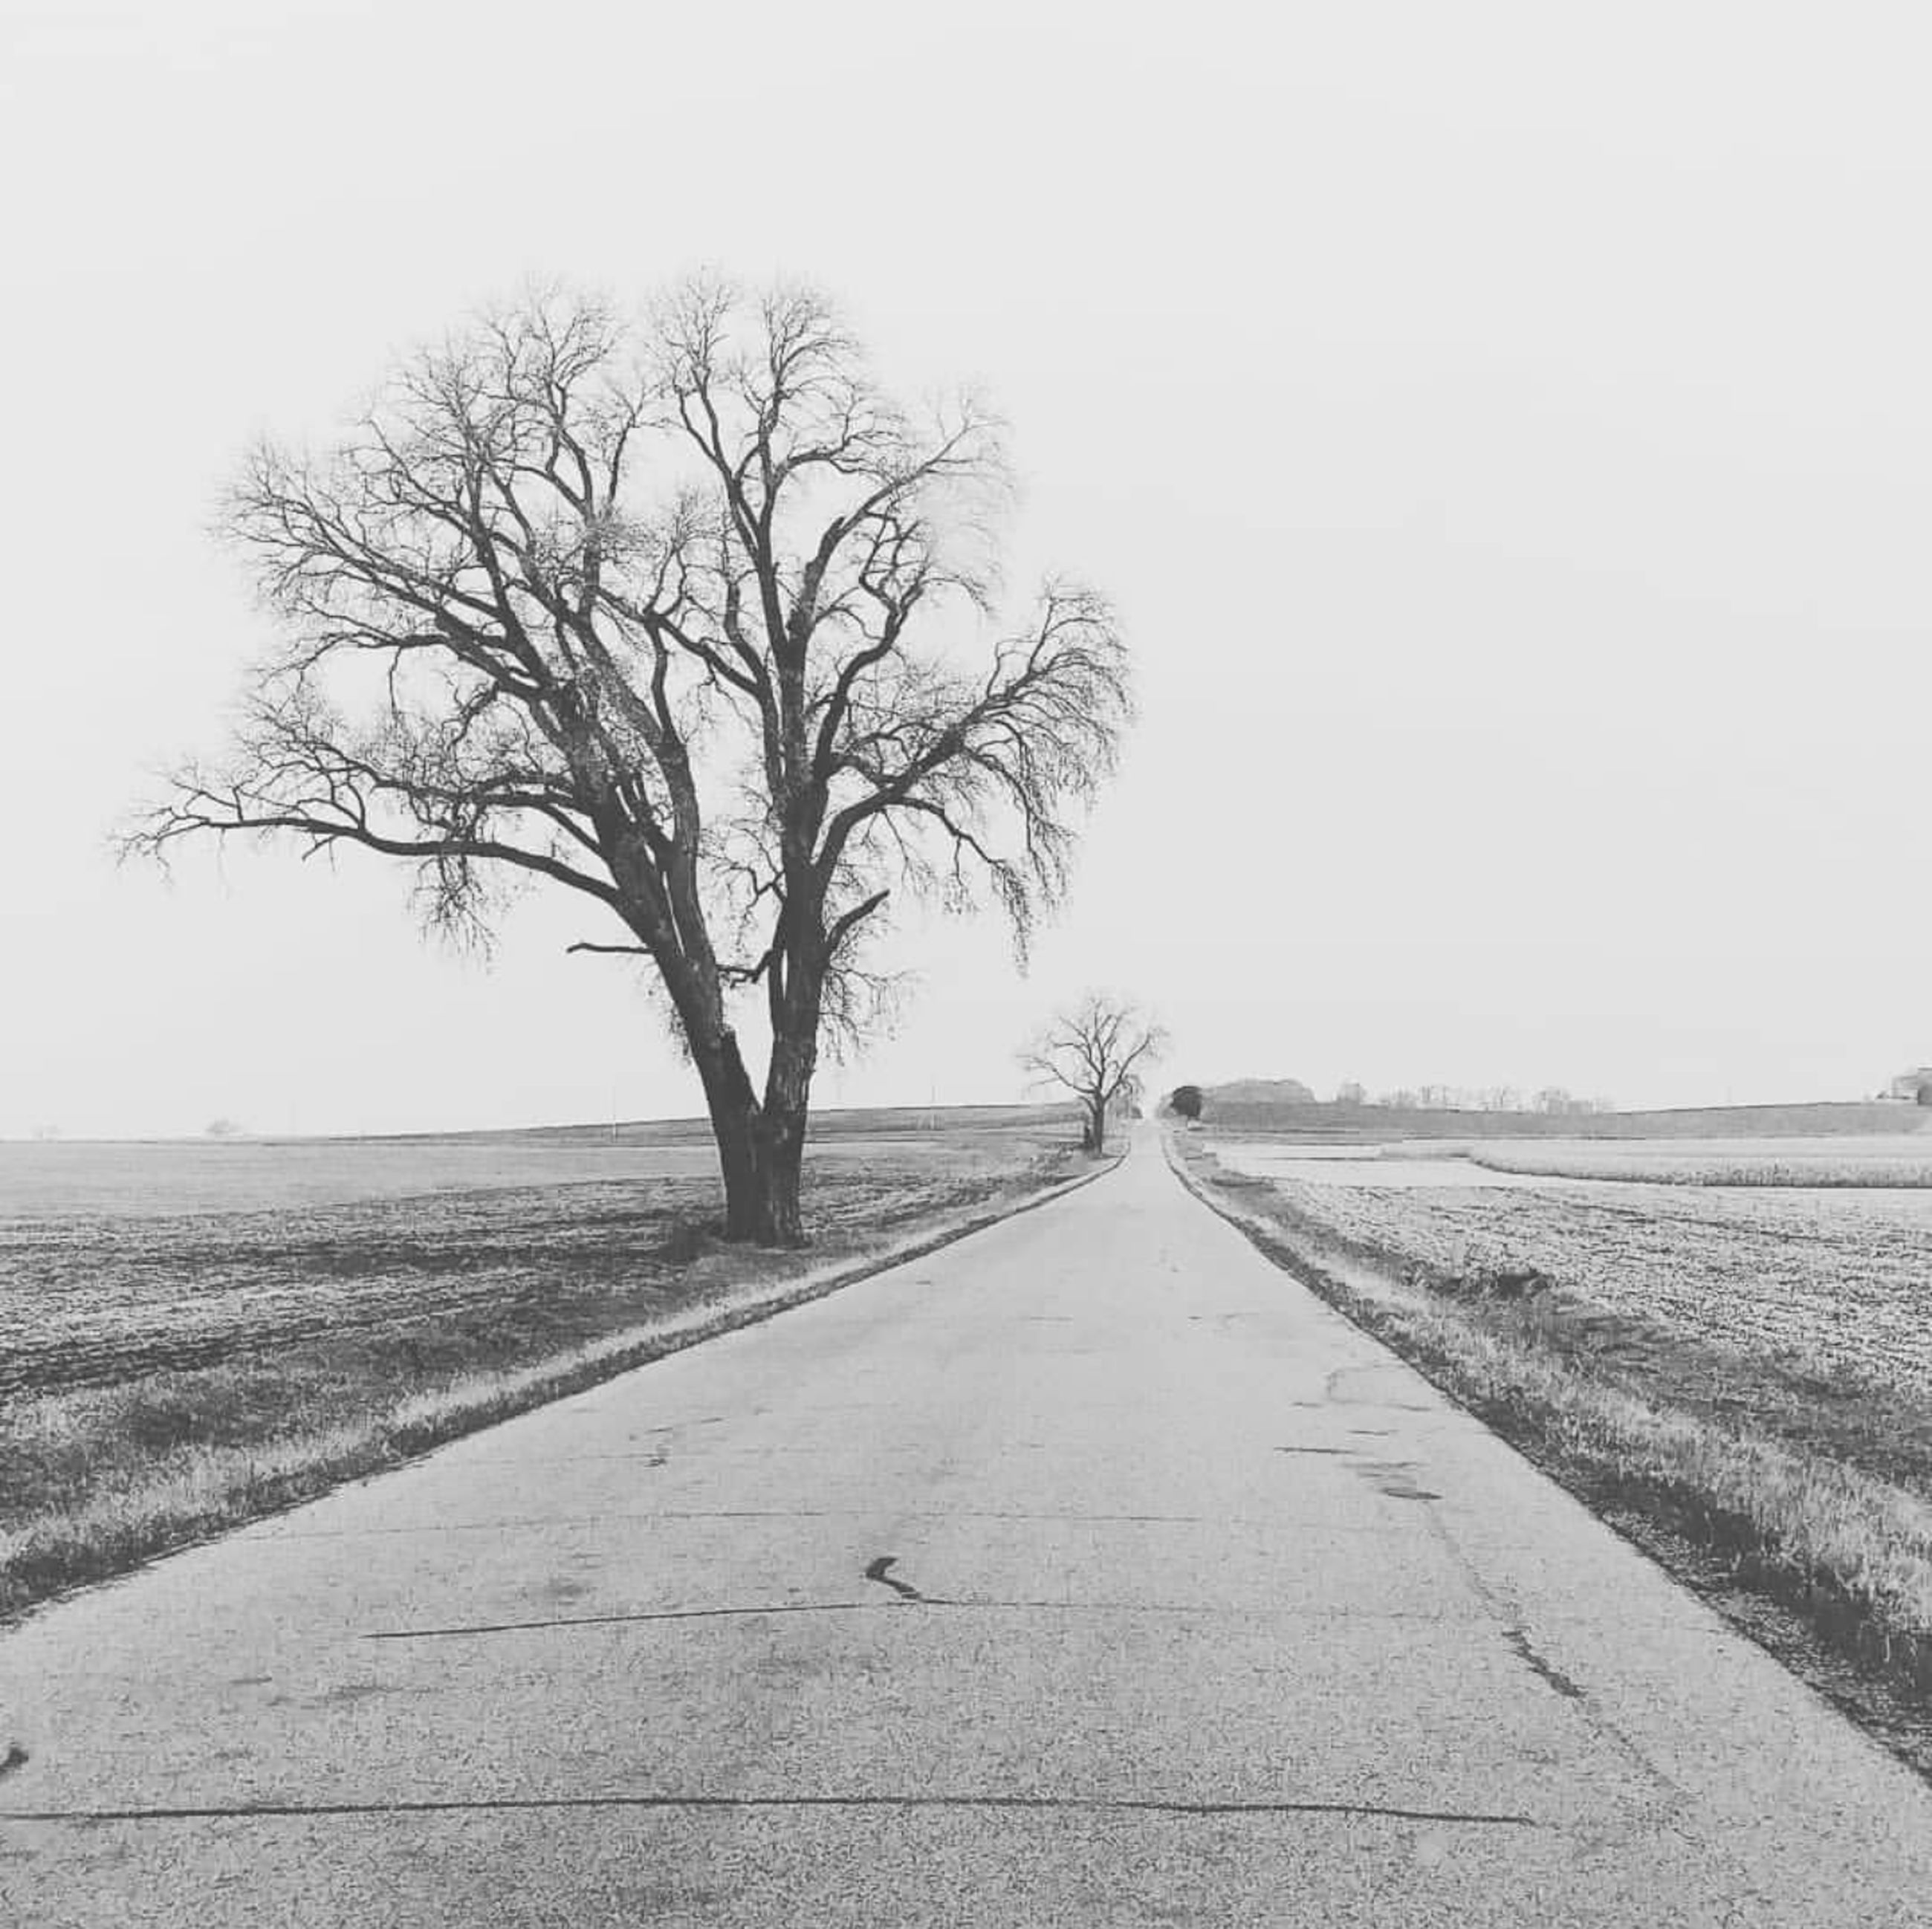 direction, landscape, road, the way forward, environment, sky, tree, bare tree, tranquil scene, transportation, plant, no people, vanishing point, tranquility, nature, diminishing perspective, scenics - nature, field, land, beauty in nature, outdoors